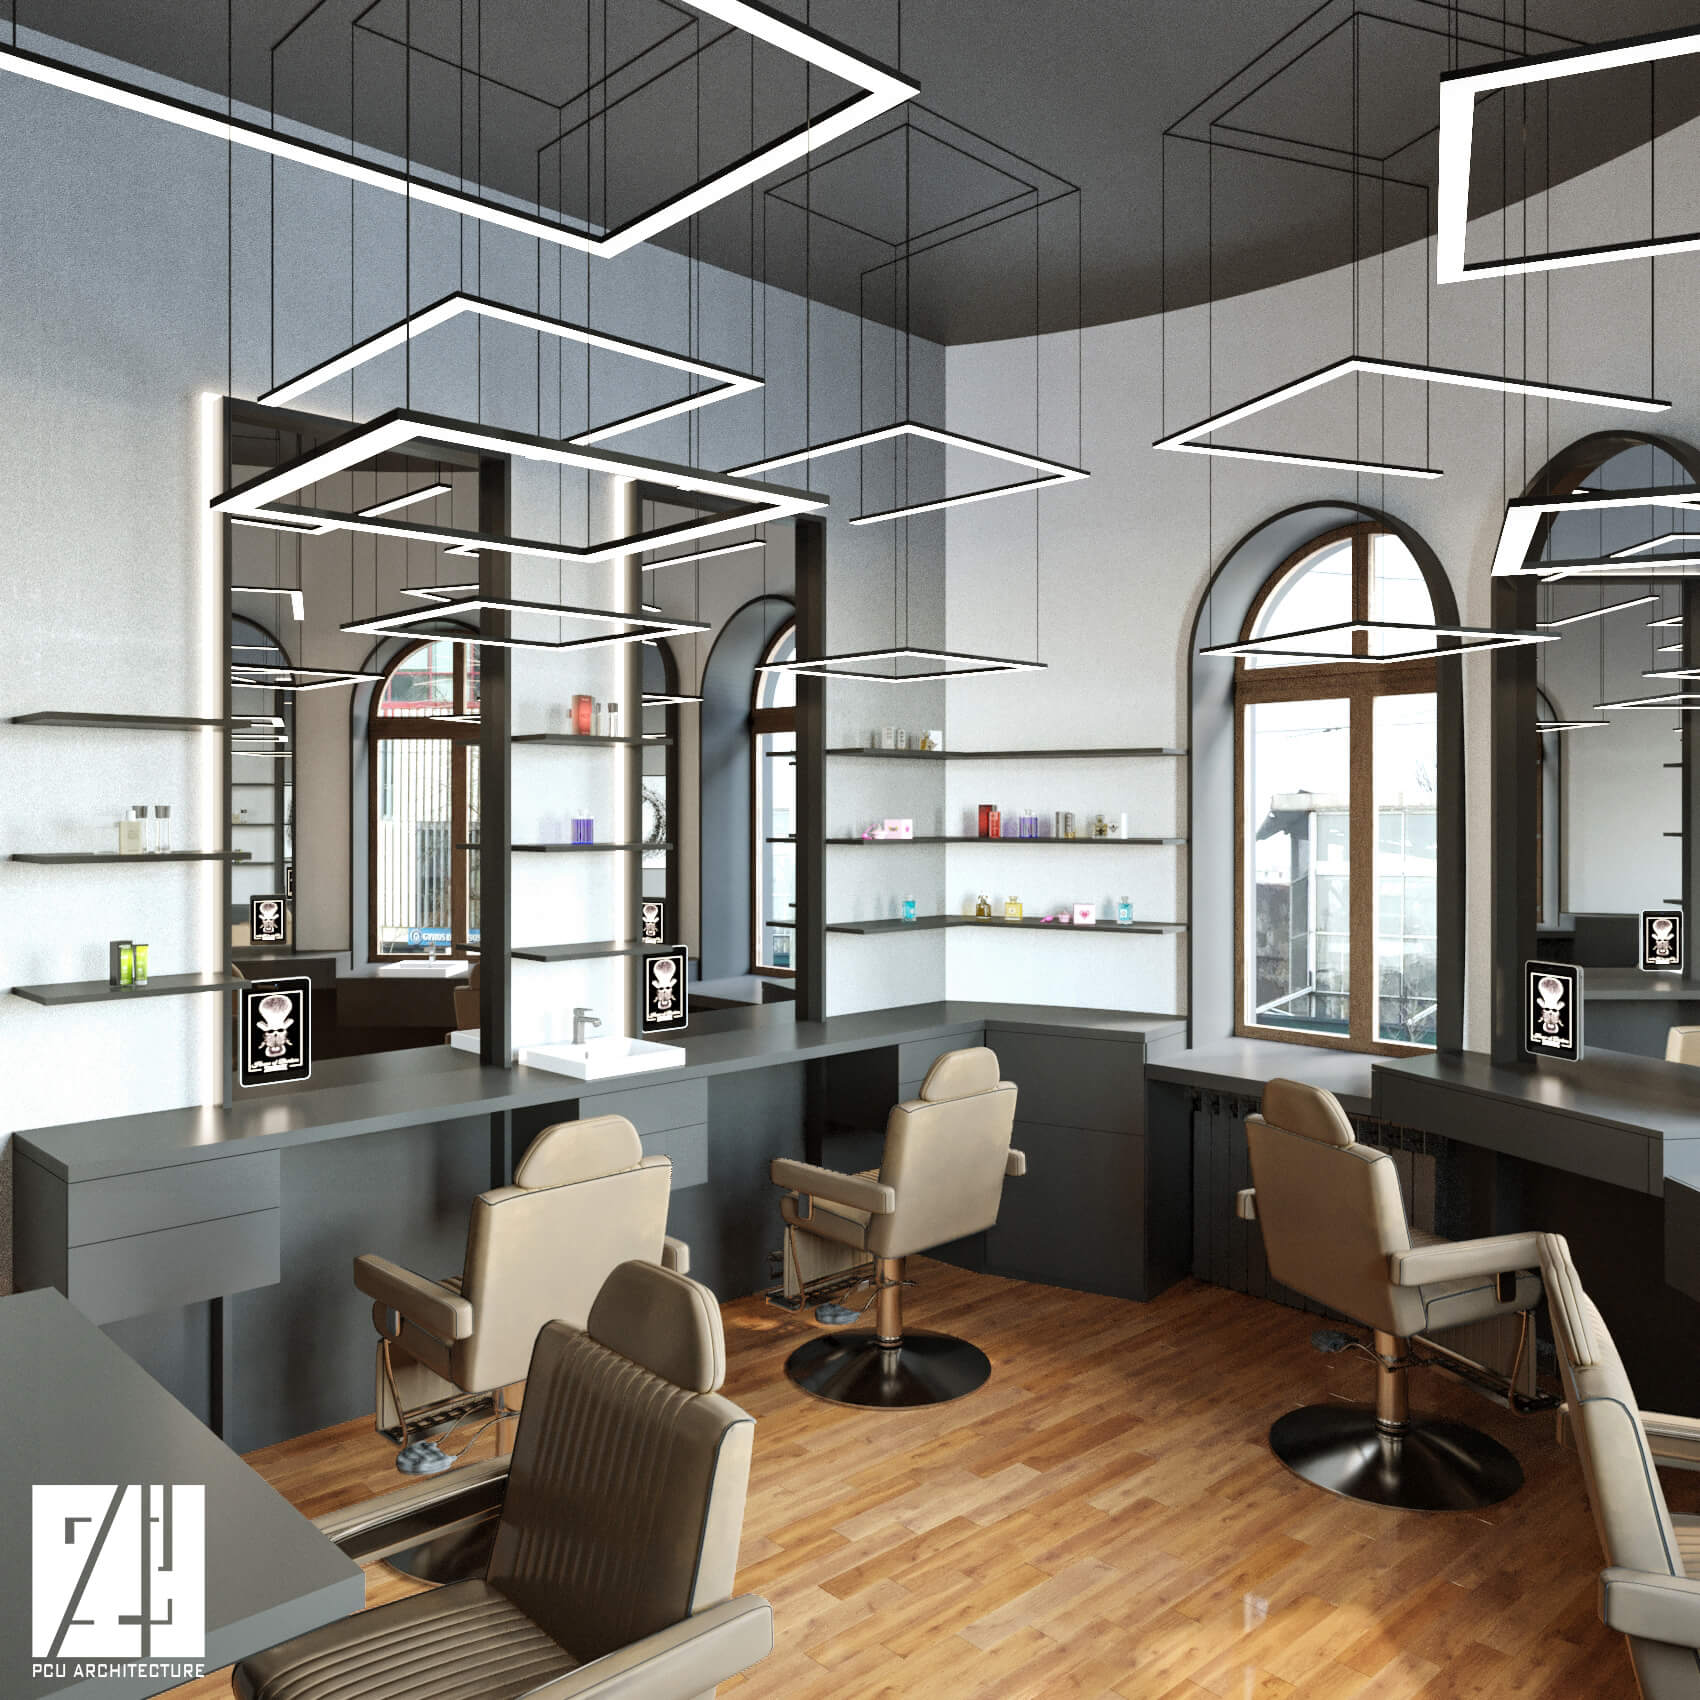 11_DI_HOUSE OF BARBERS_SALON HAIRSTYLE 2 (2)